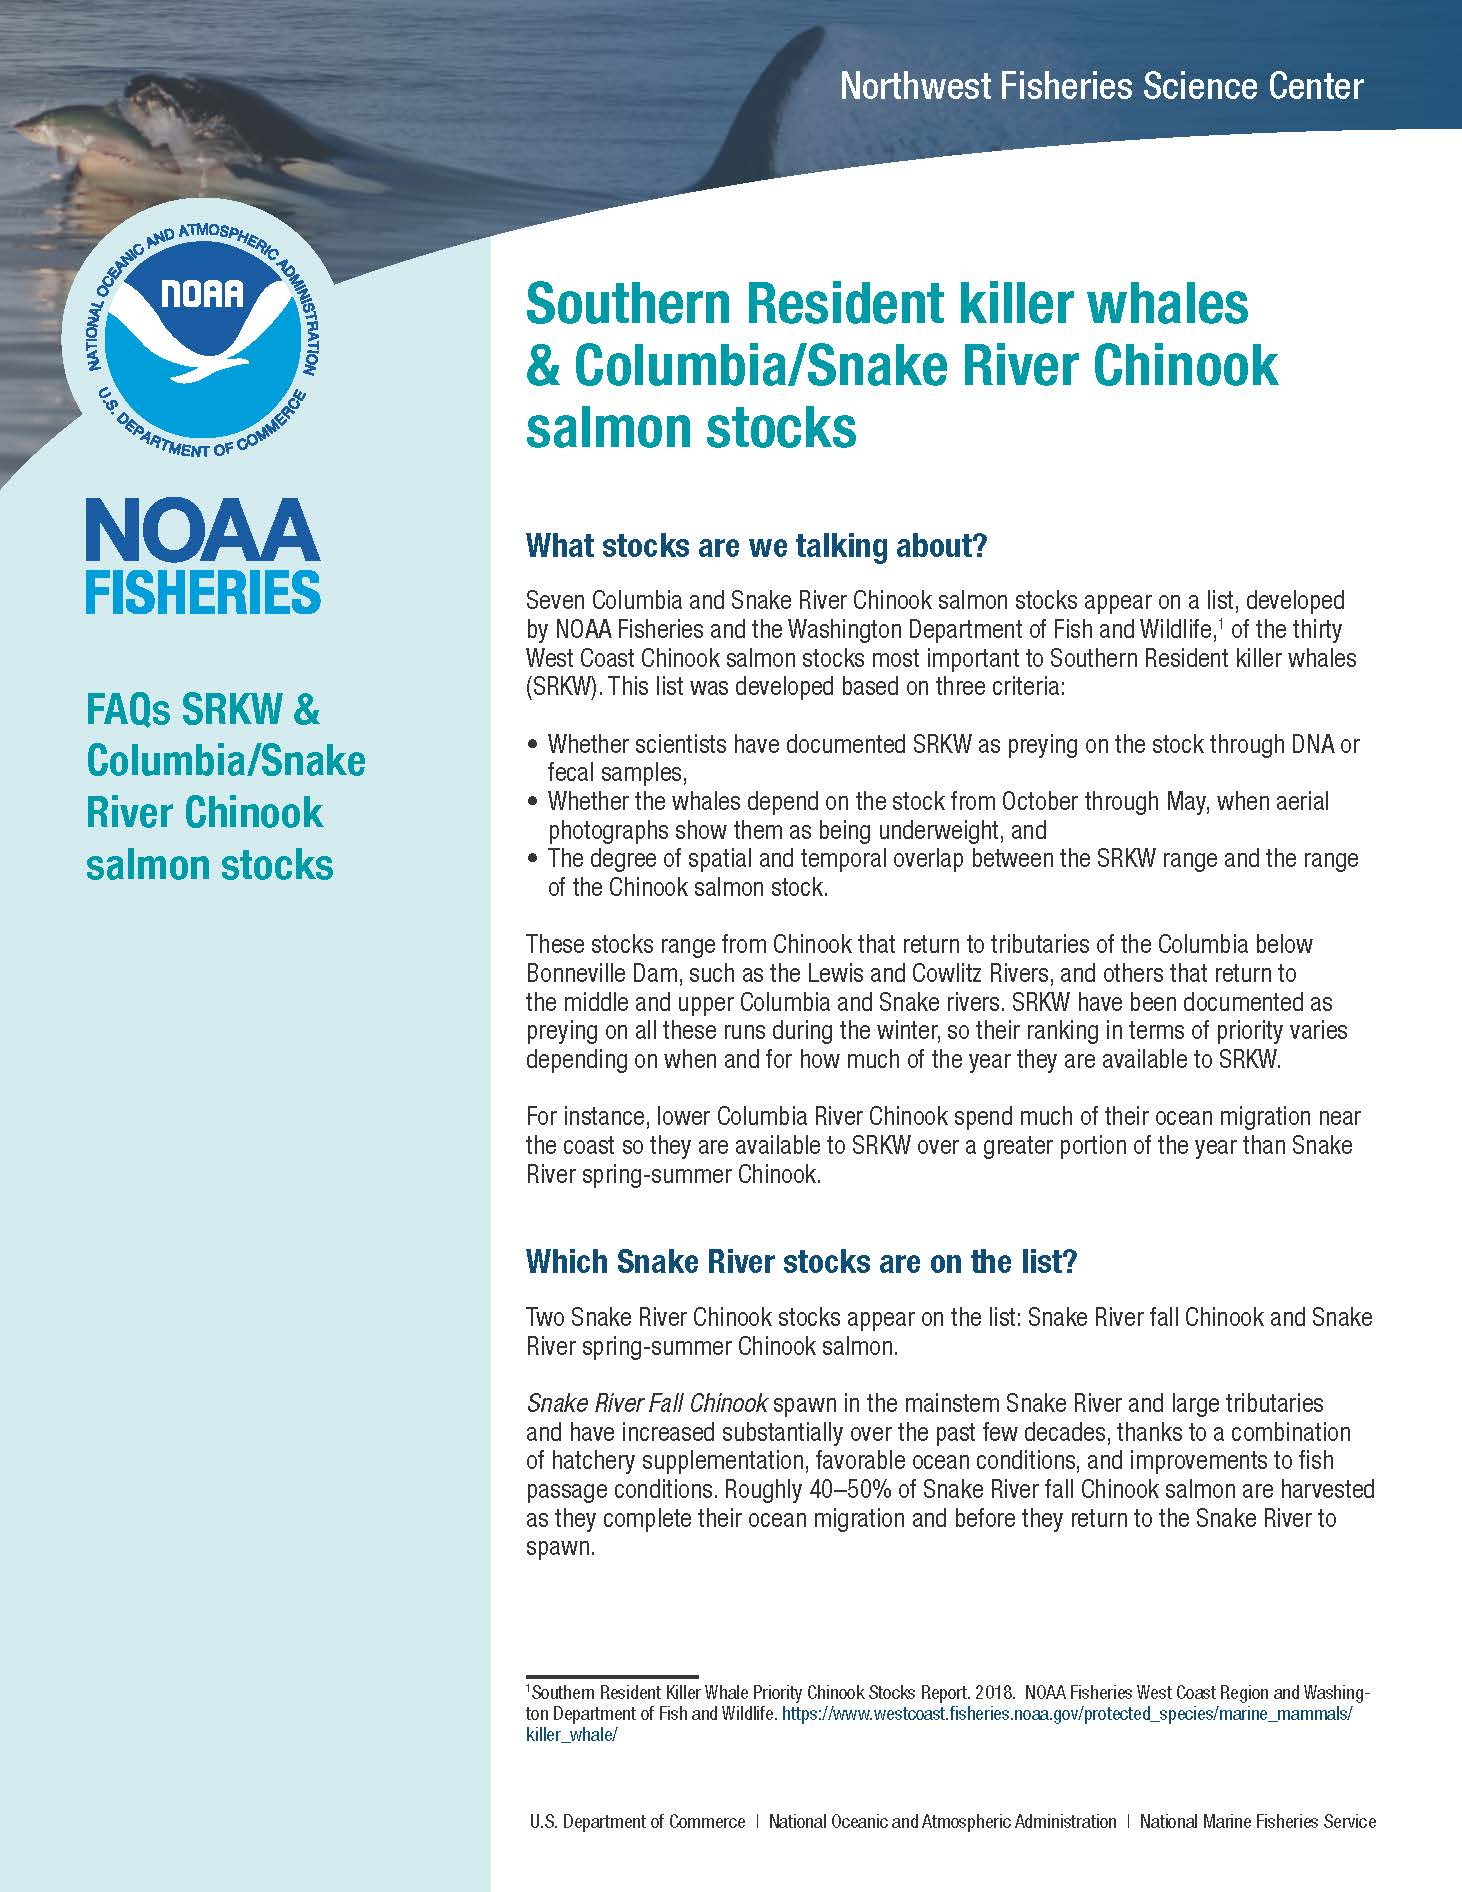 Southern Resident Killer Whales & Columbia/Snake River Chinook Salmon Stocks FAQs